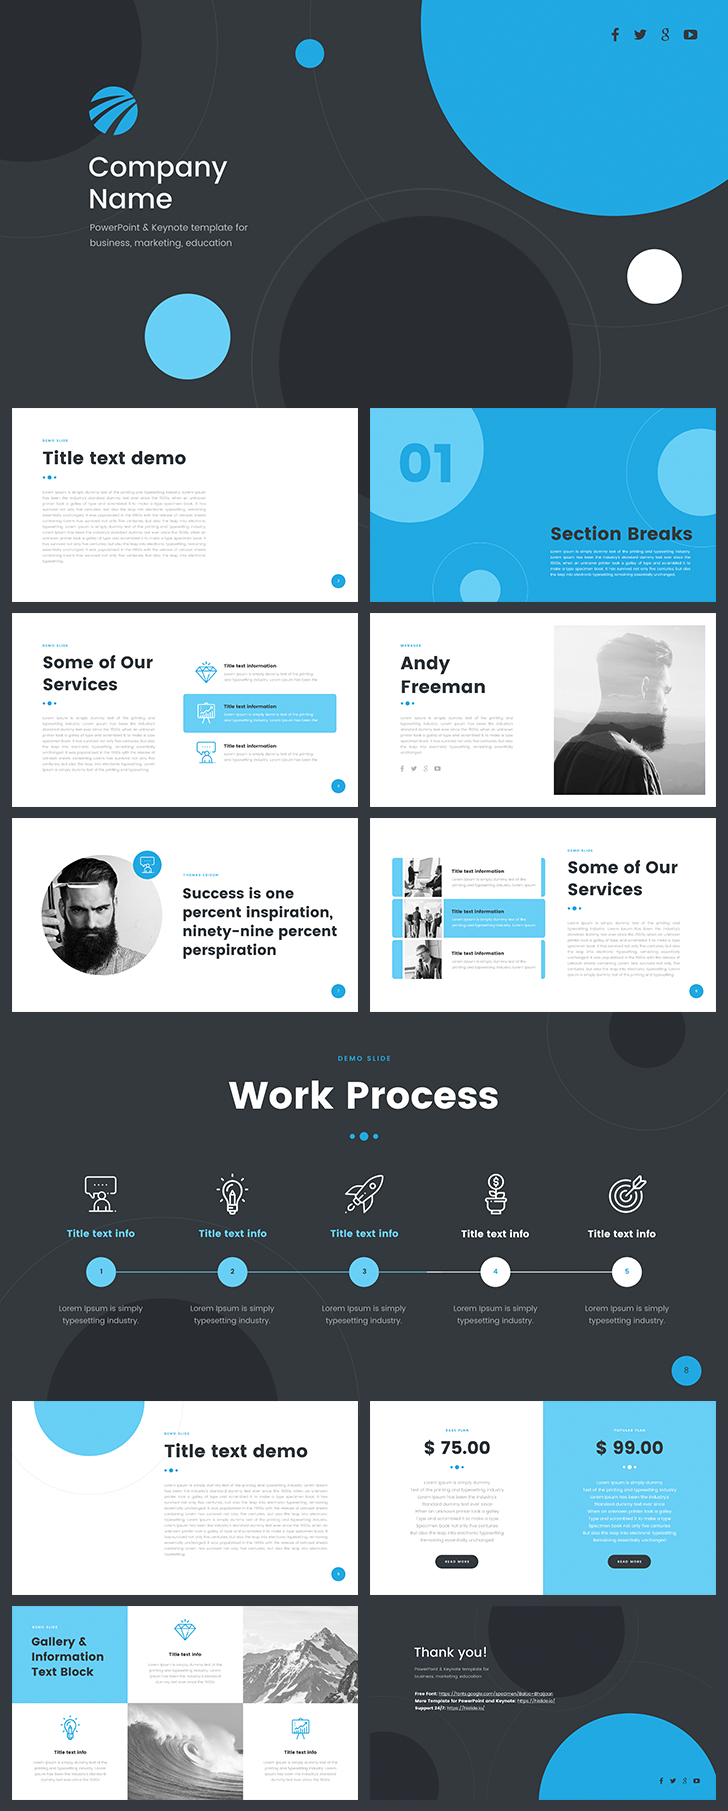 Free Company Profile Template Powerpoint  Ppt  Company Profile For Free Business Profile Template Download